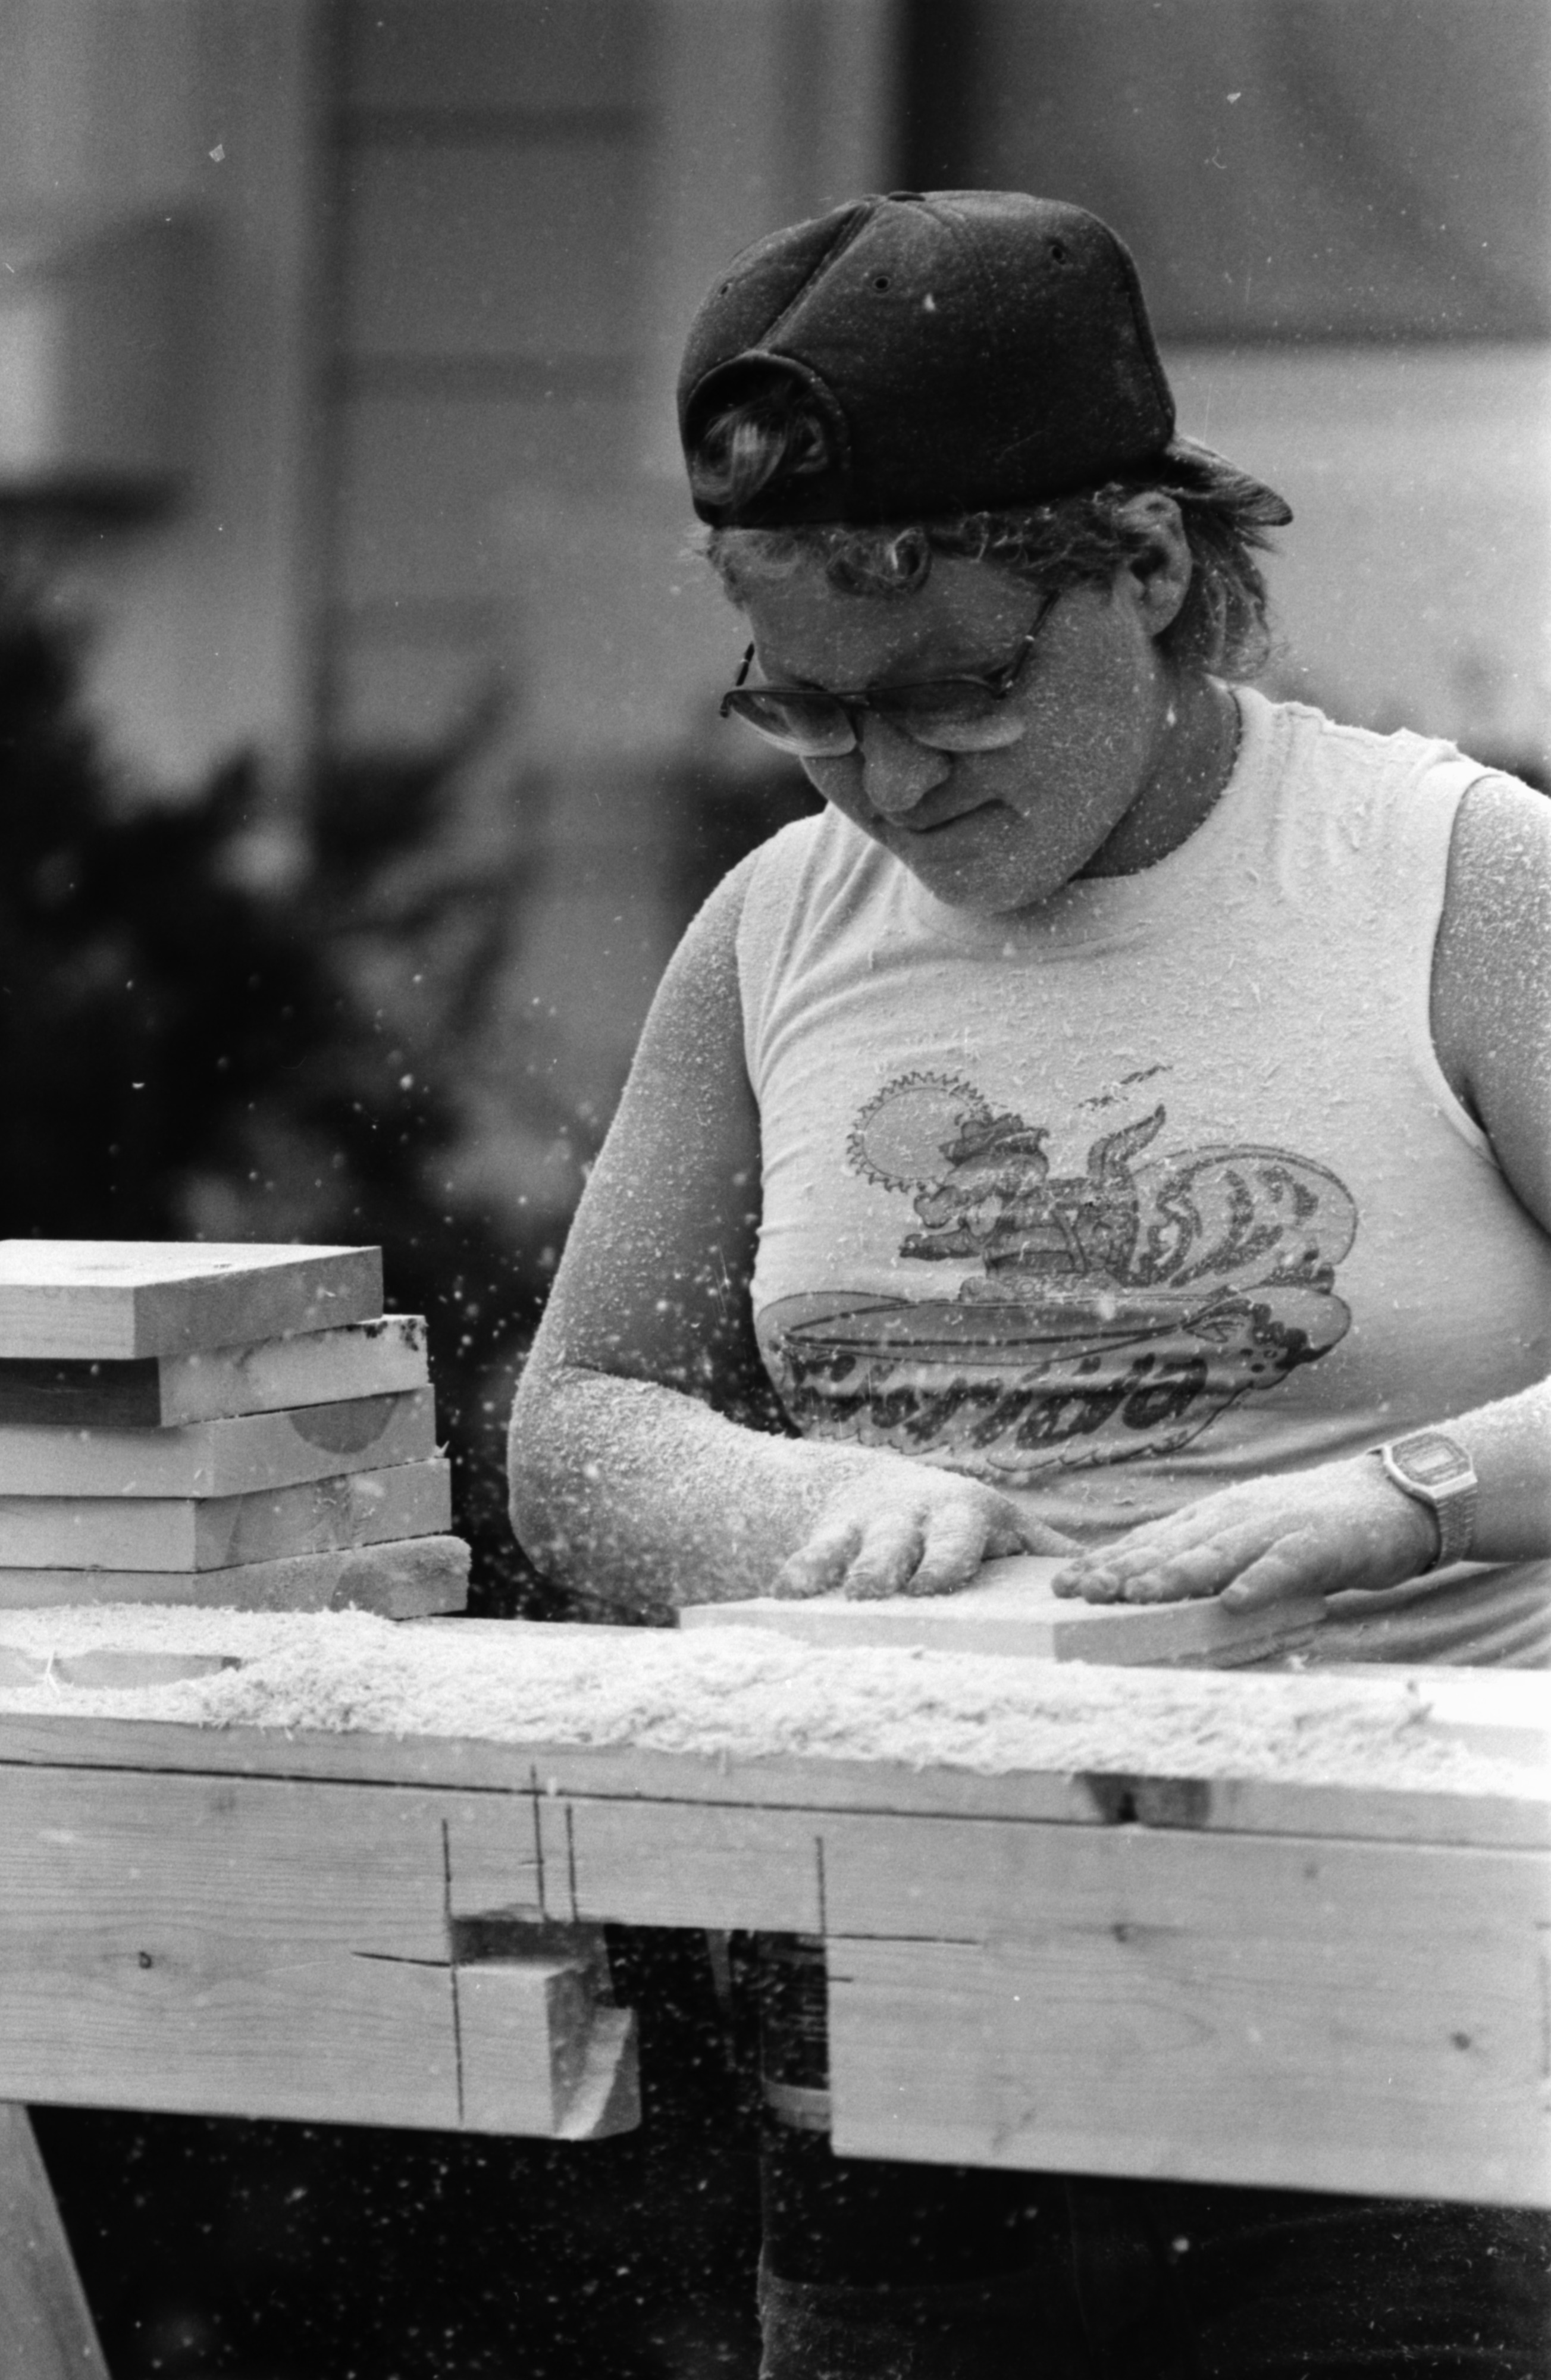 Ted Sanders from Delusha Construction Co. Works on Cutting Wood for Porches at Pittsfield Village, August 1987 image